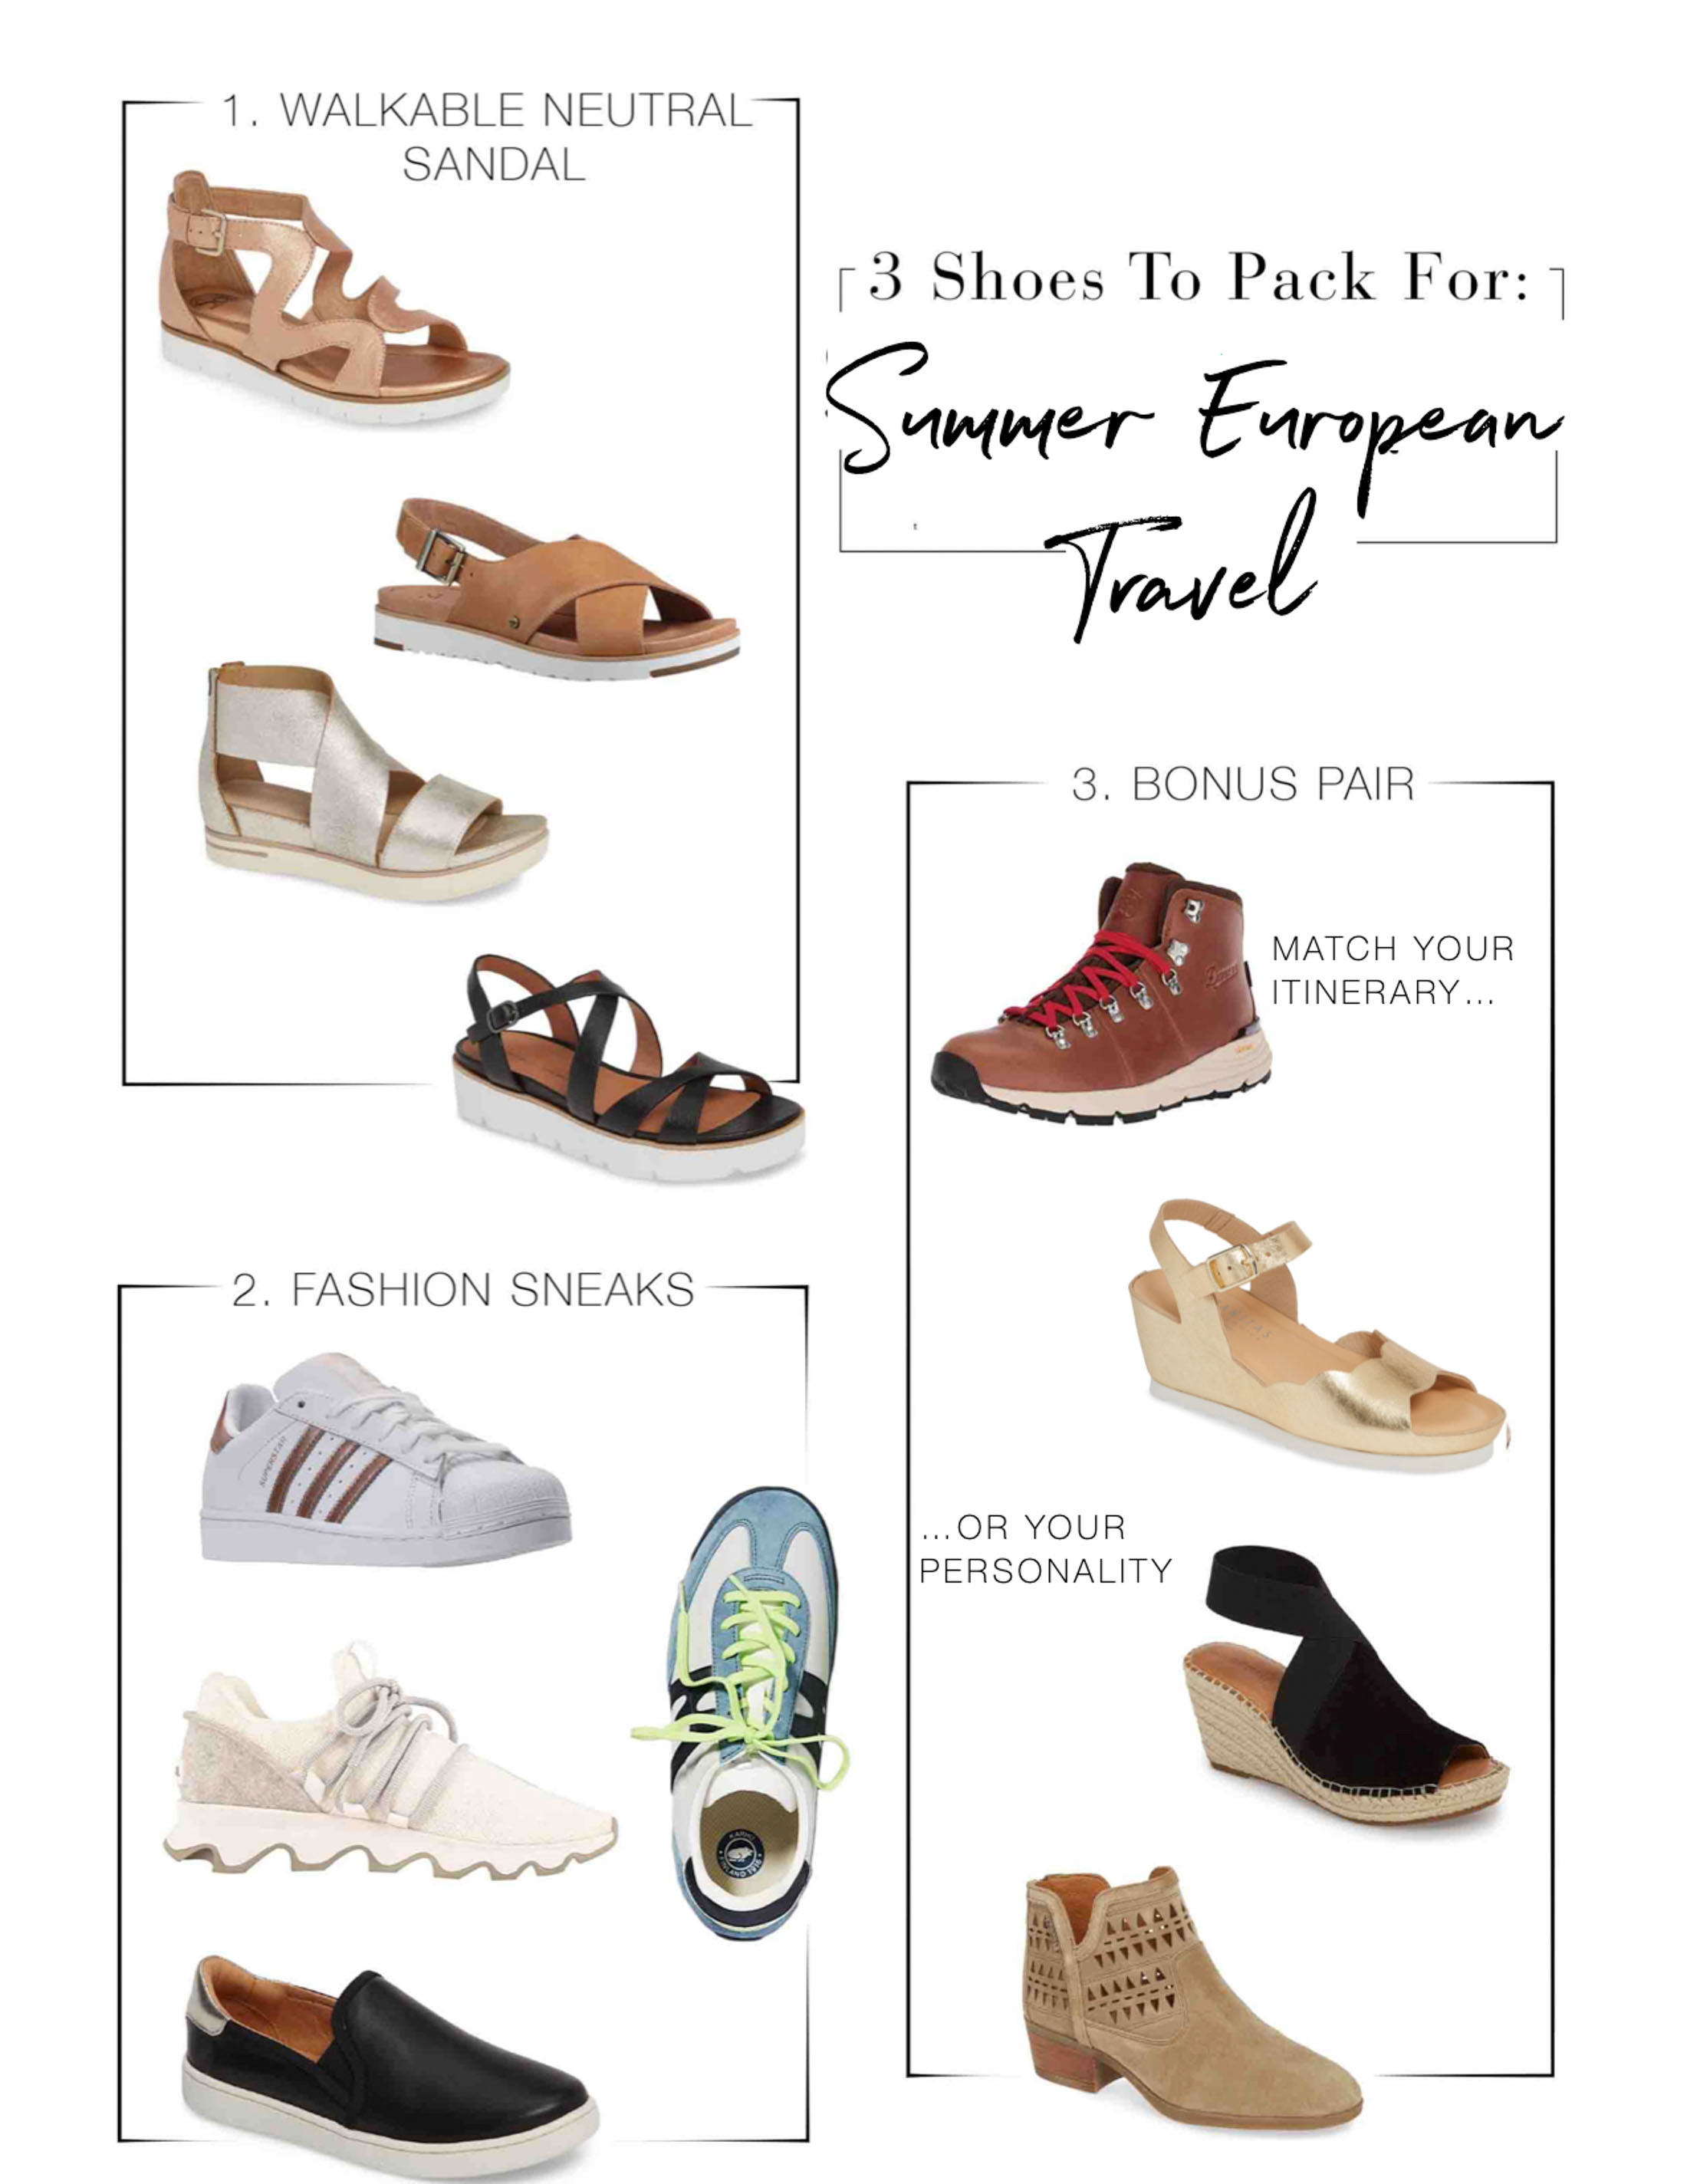 Your packing list for travel to Europe this summer MUST include 2-to-3 pair of walkable, stylish shoes. We're on it! Our style suggestions right here.